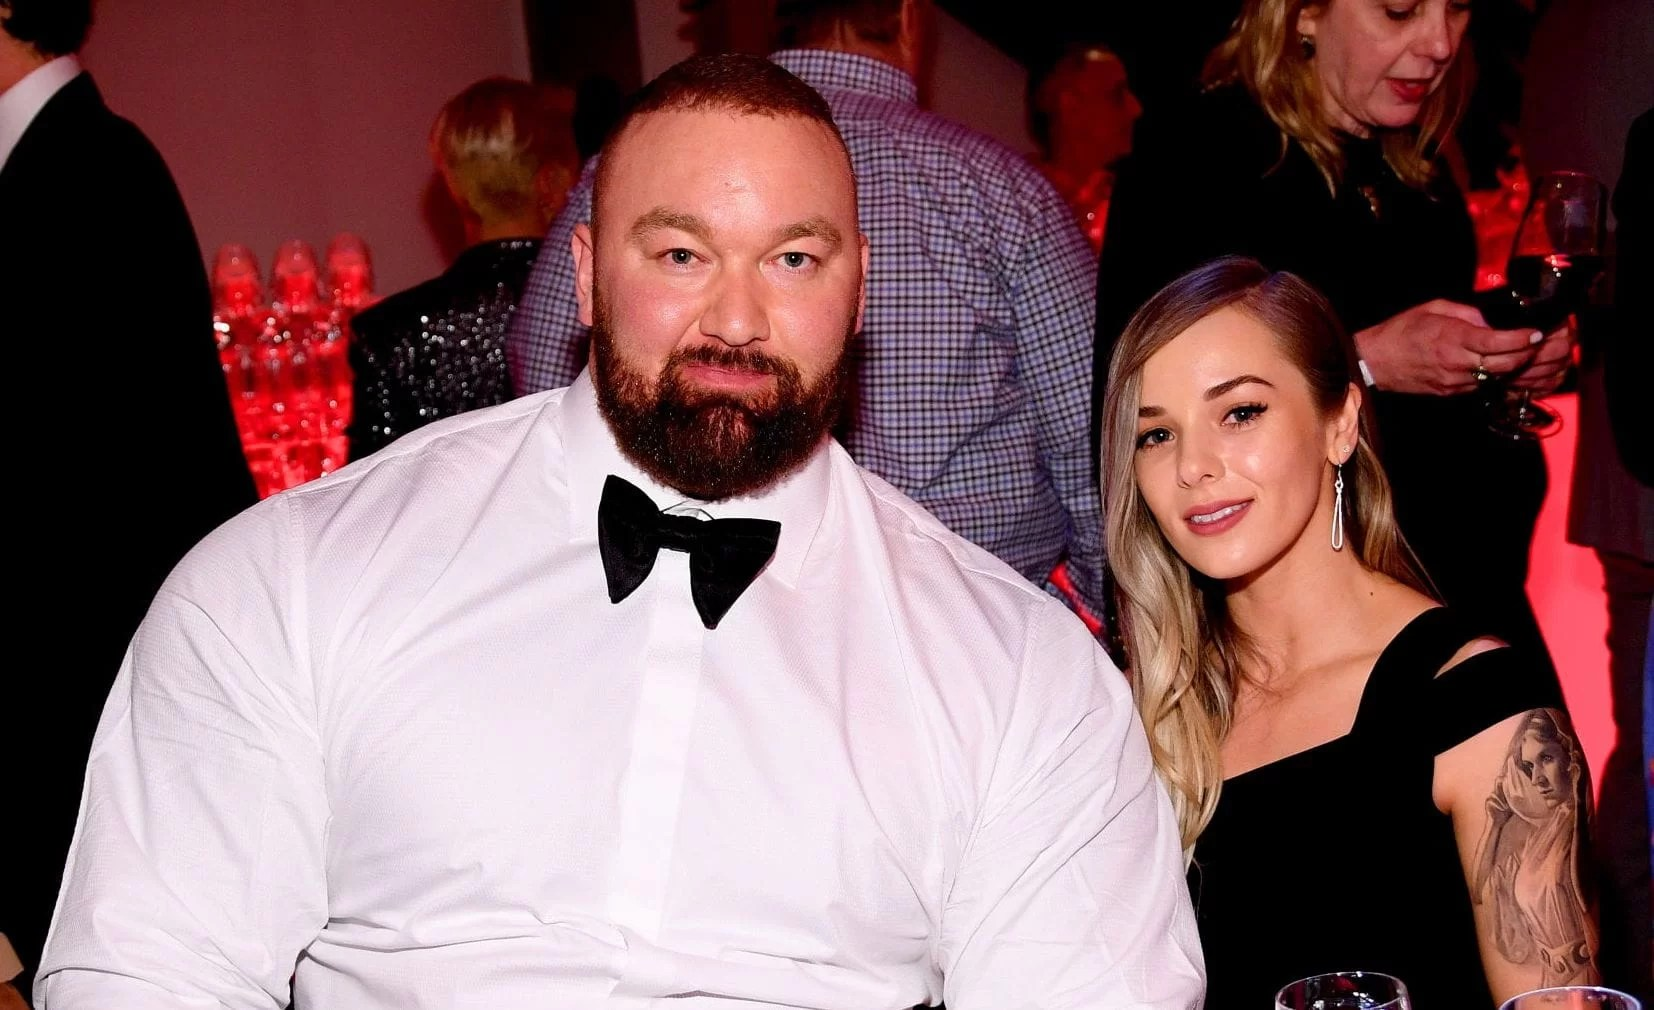 All you need to know about Hafthor Bjornsson's wife, Kelsey Henson